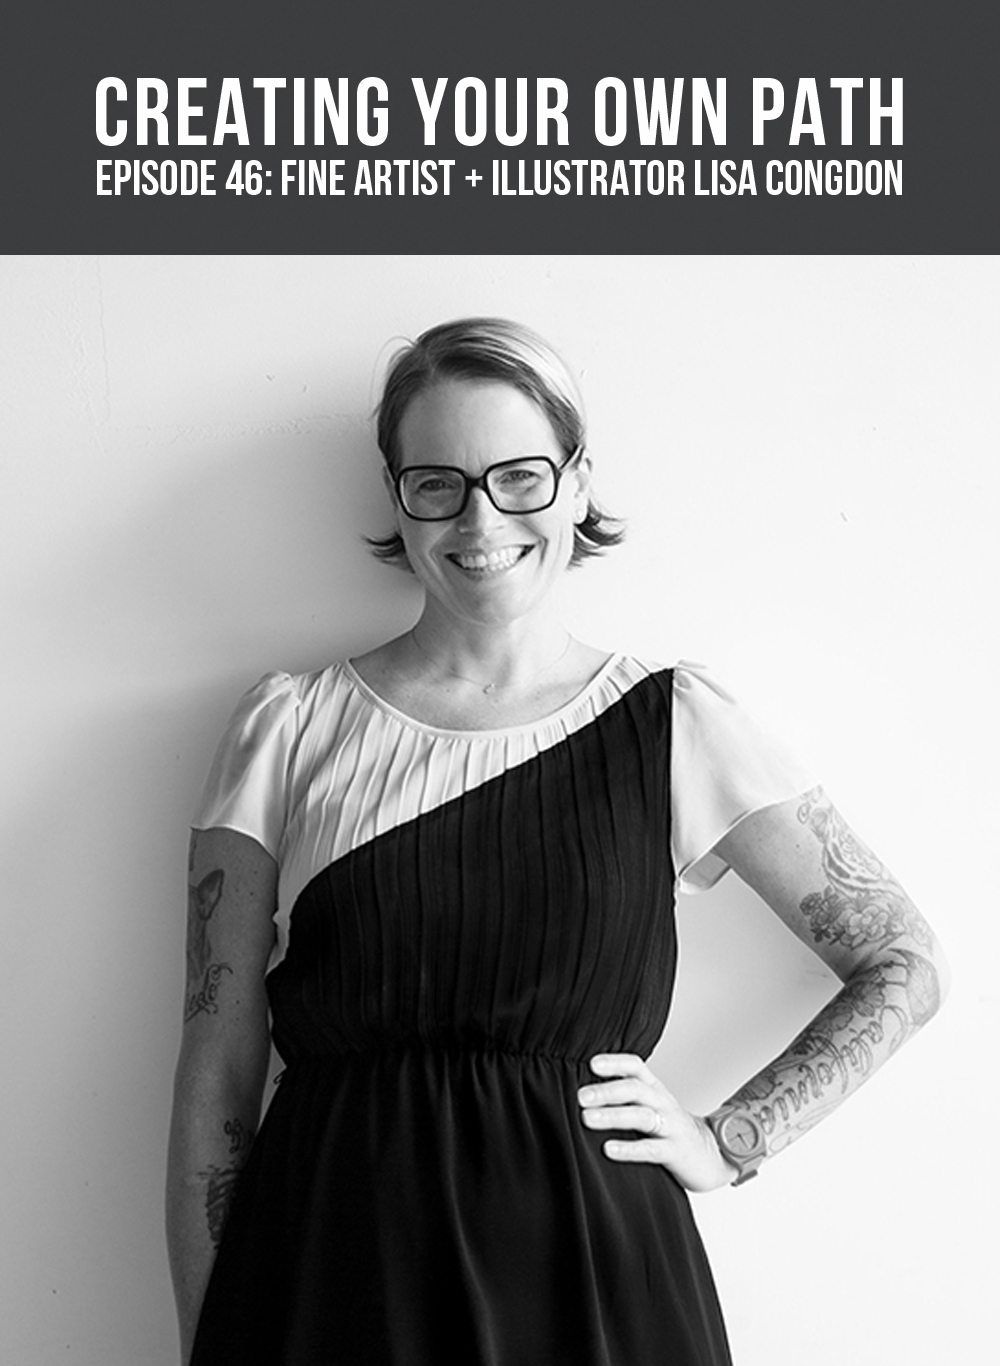 CYOP #46 - The Benefits of Practice + Creating a Diverse Body of Work with Fine Artist + Illustrator Lisa Congdon // Listen to the full interview at creatingyourownpath.com.